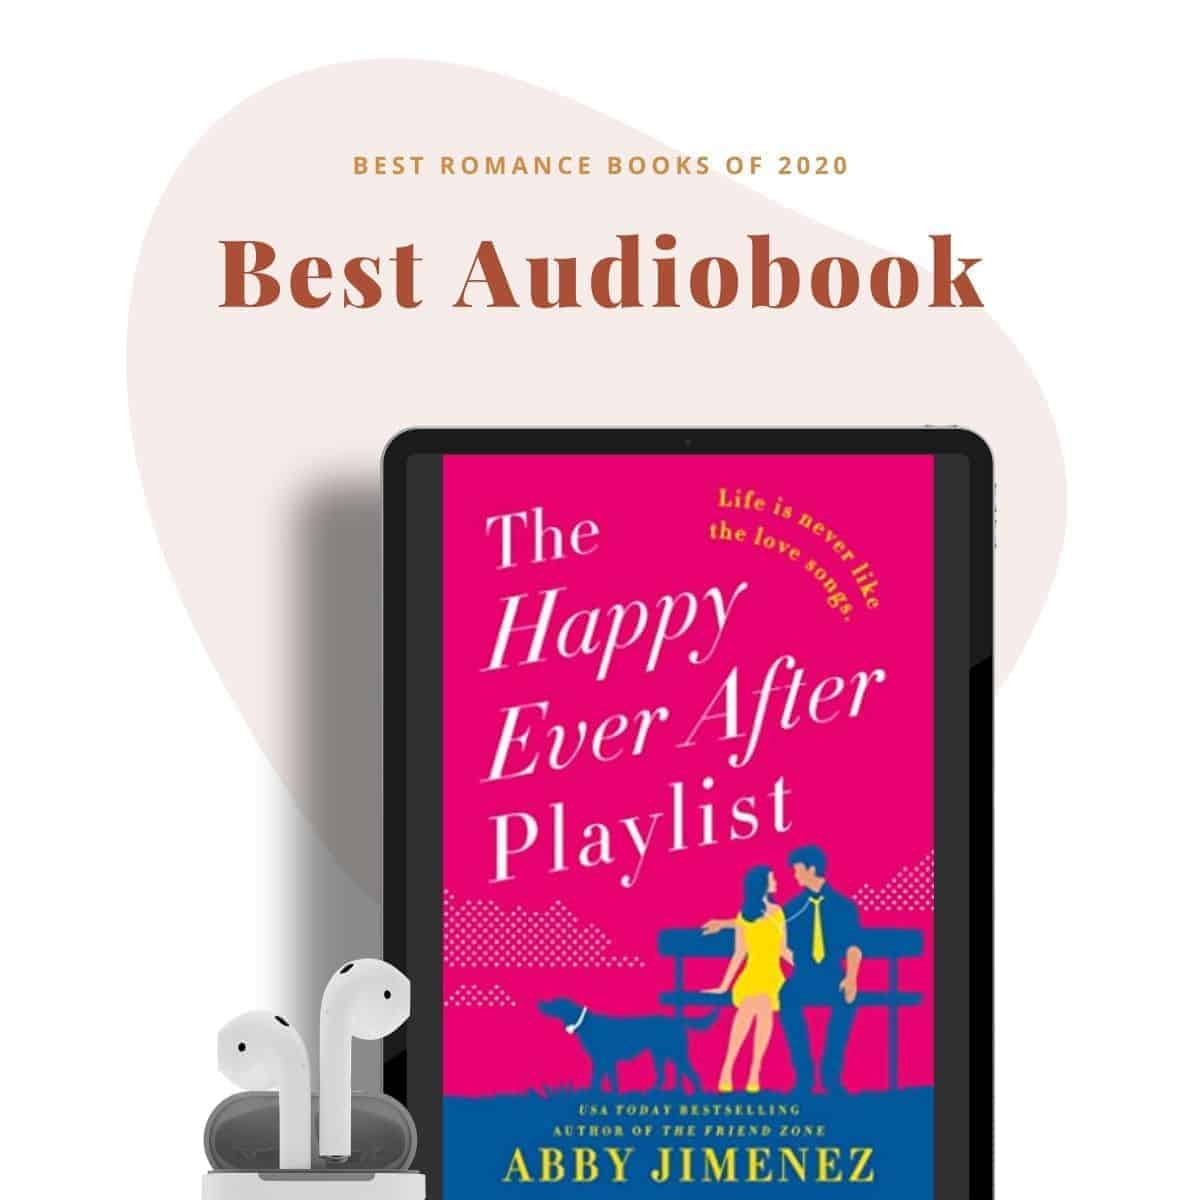 Best Romance Books 2020-The Happy Ever After Playlist